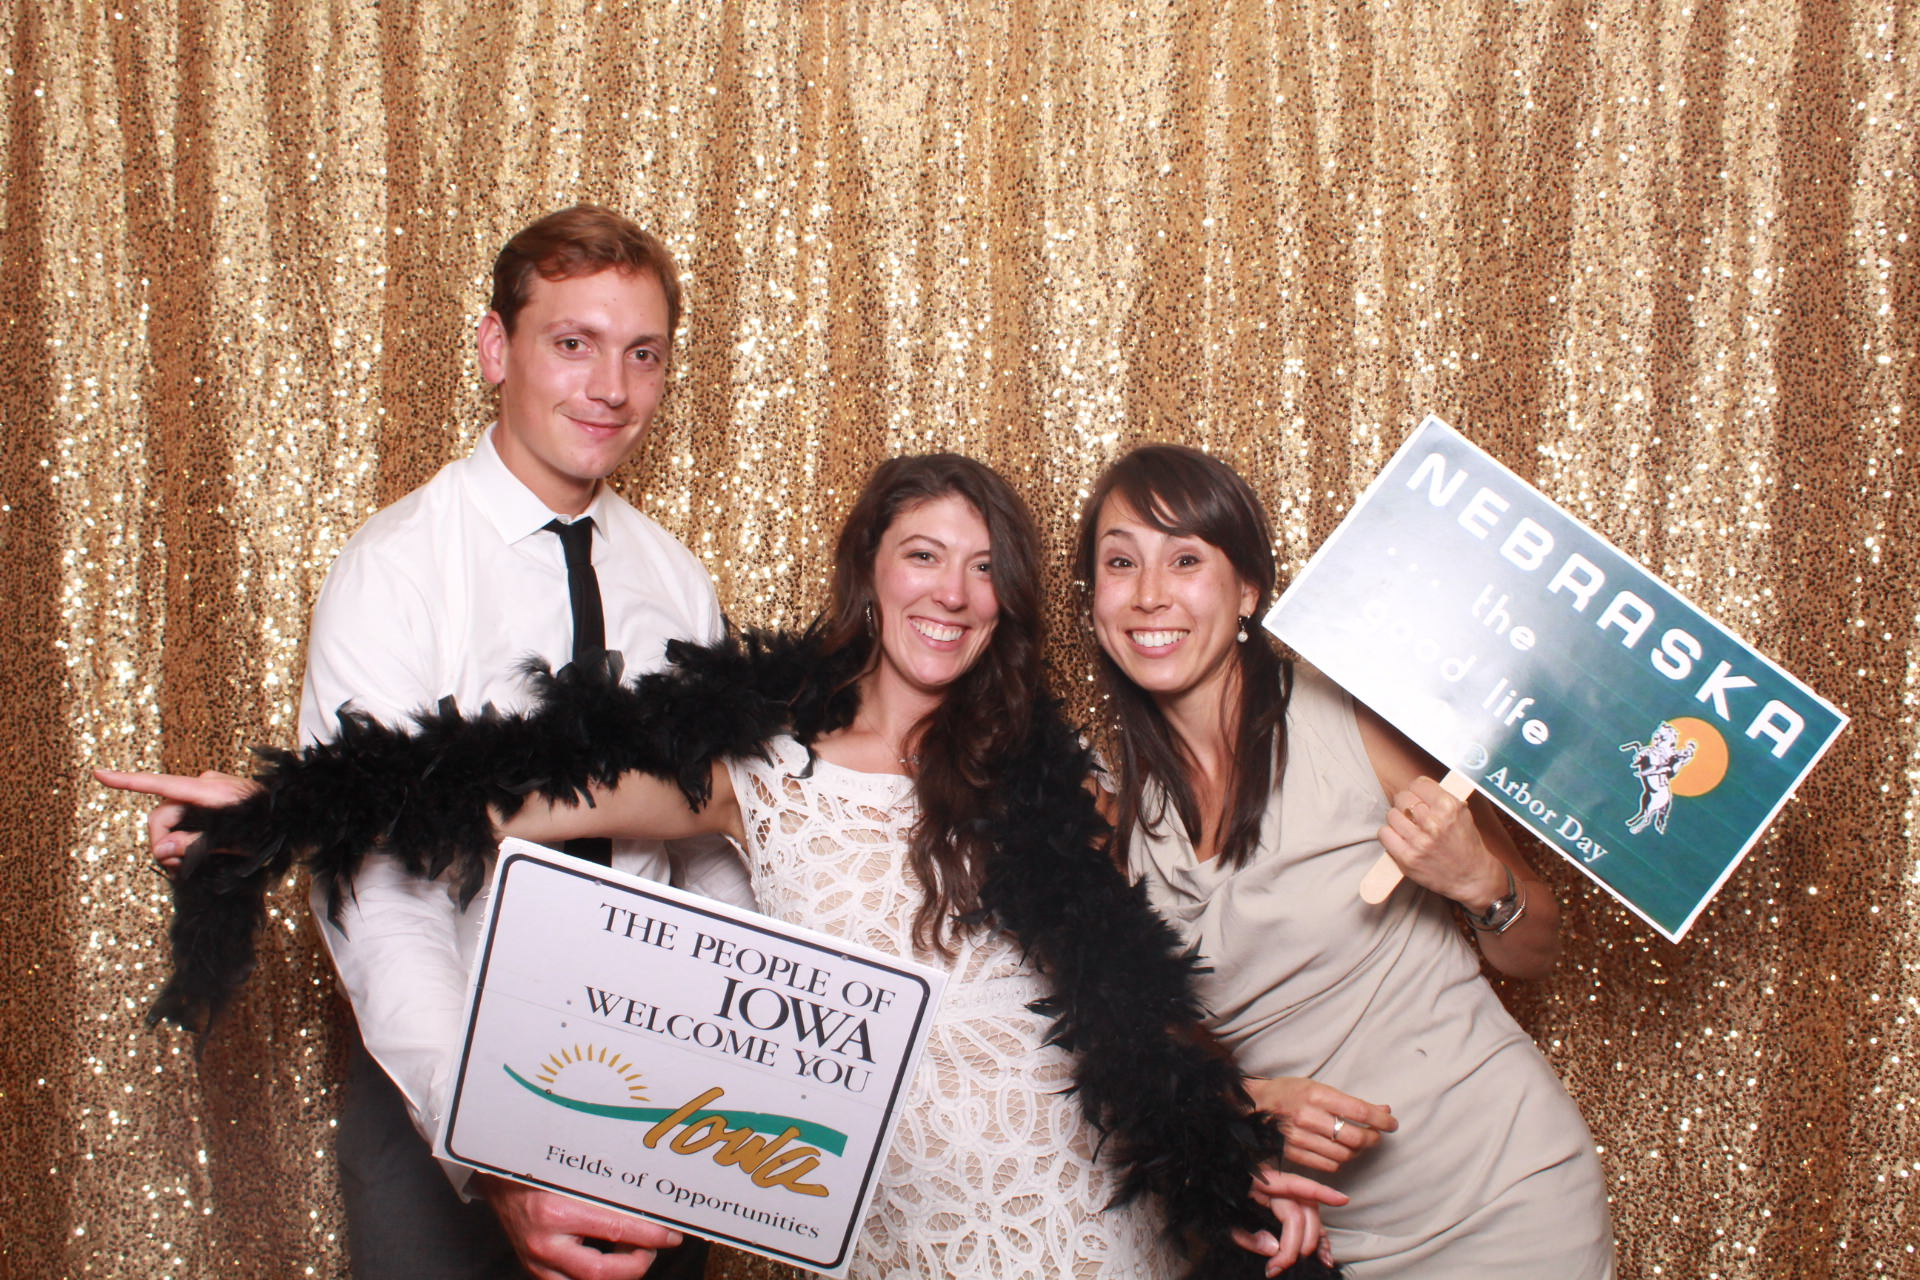 Lauritzen gardens-omaha-nebraska-wedding-snap omaha-photo booth